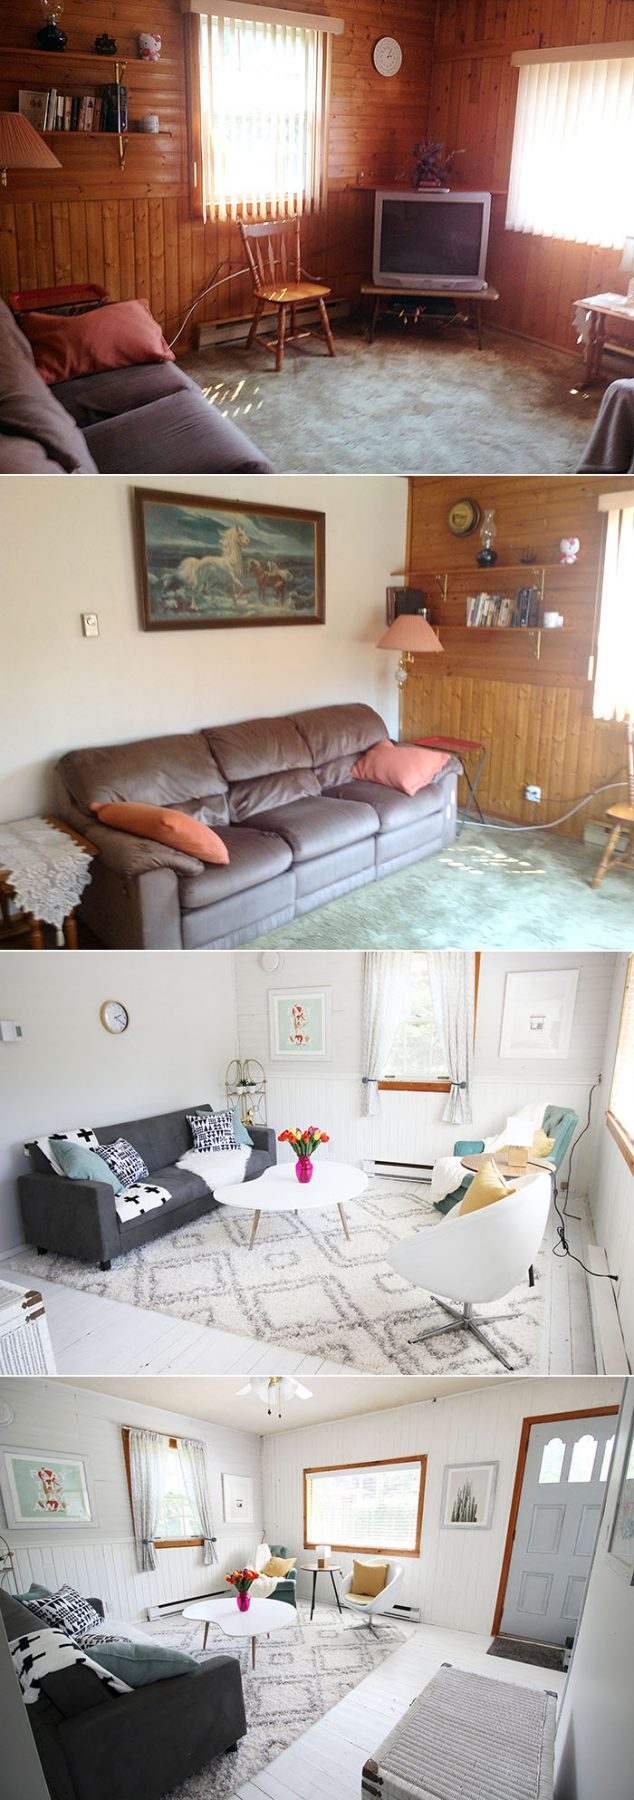 My Before and After Home Makeover Journey - Wonder Forest